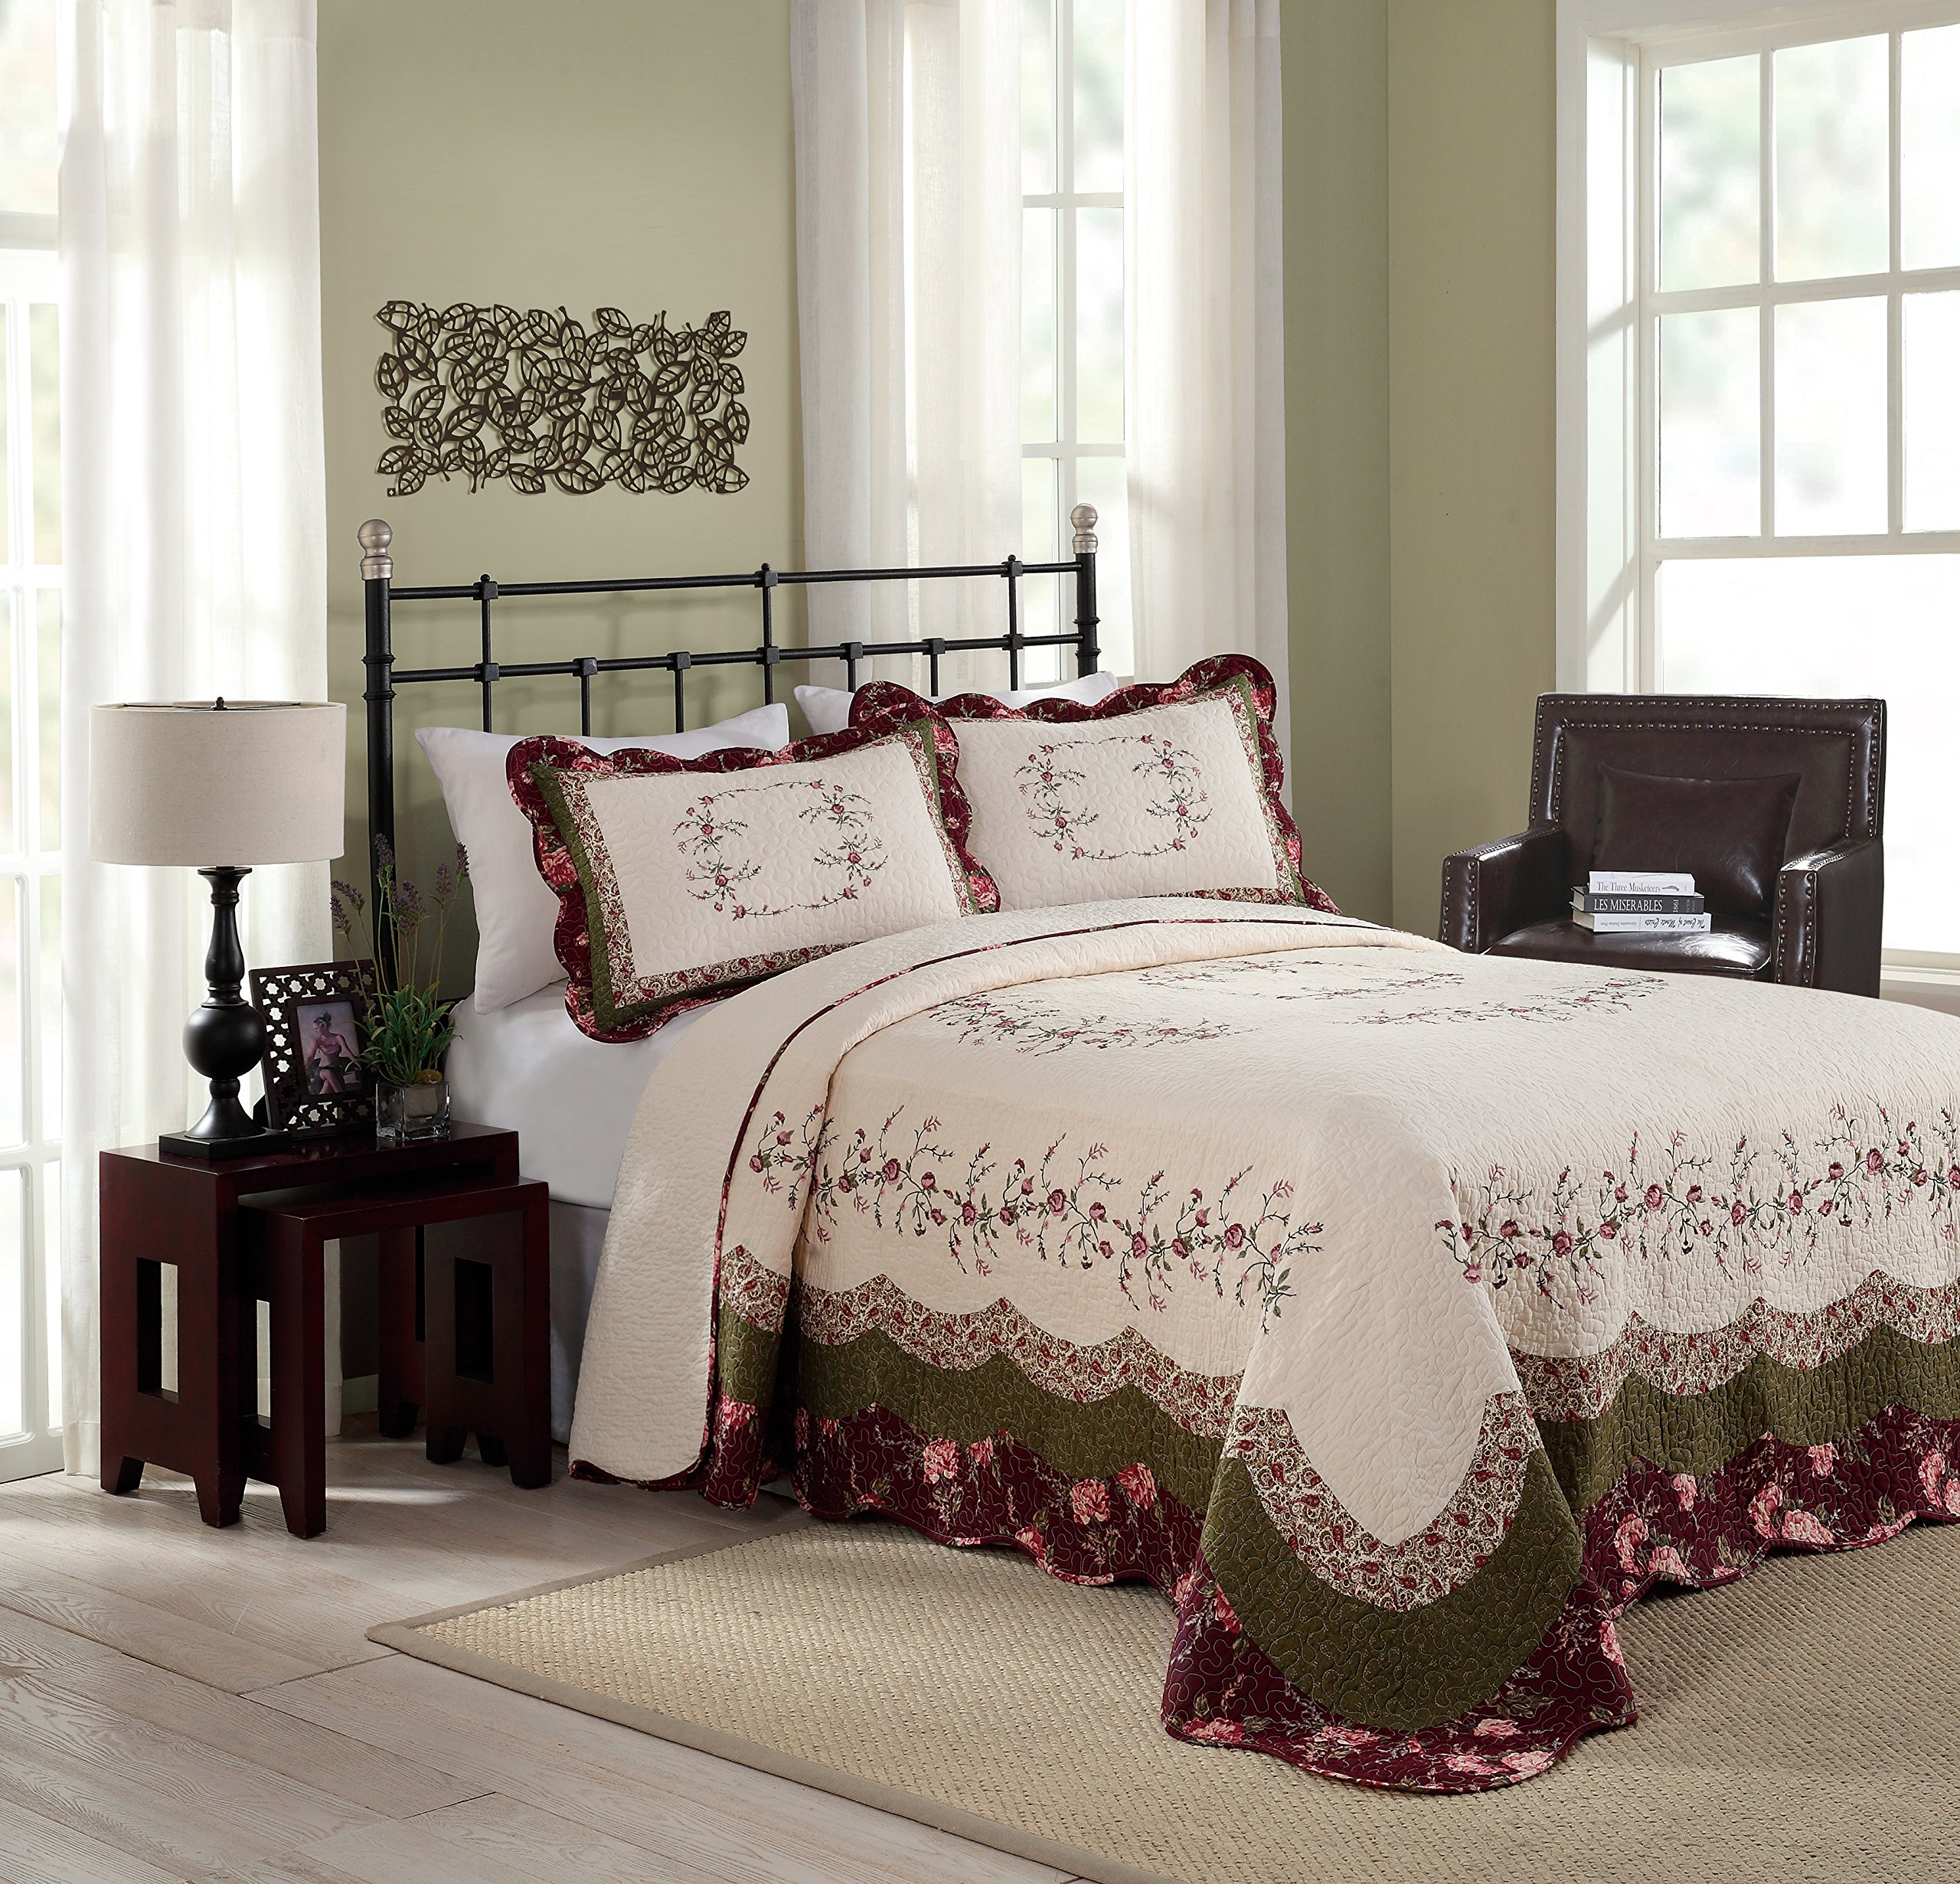 Modern Heirloom Collection Brooke Cotton Filled Bedspread, Queen, 102 by 118-Inch